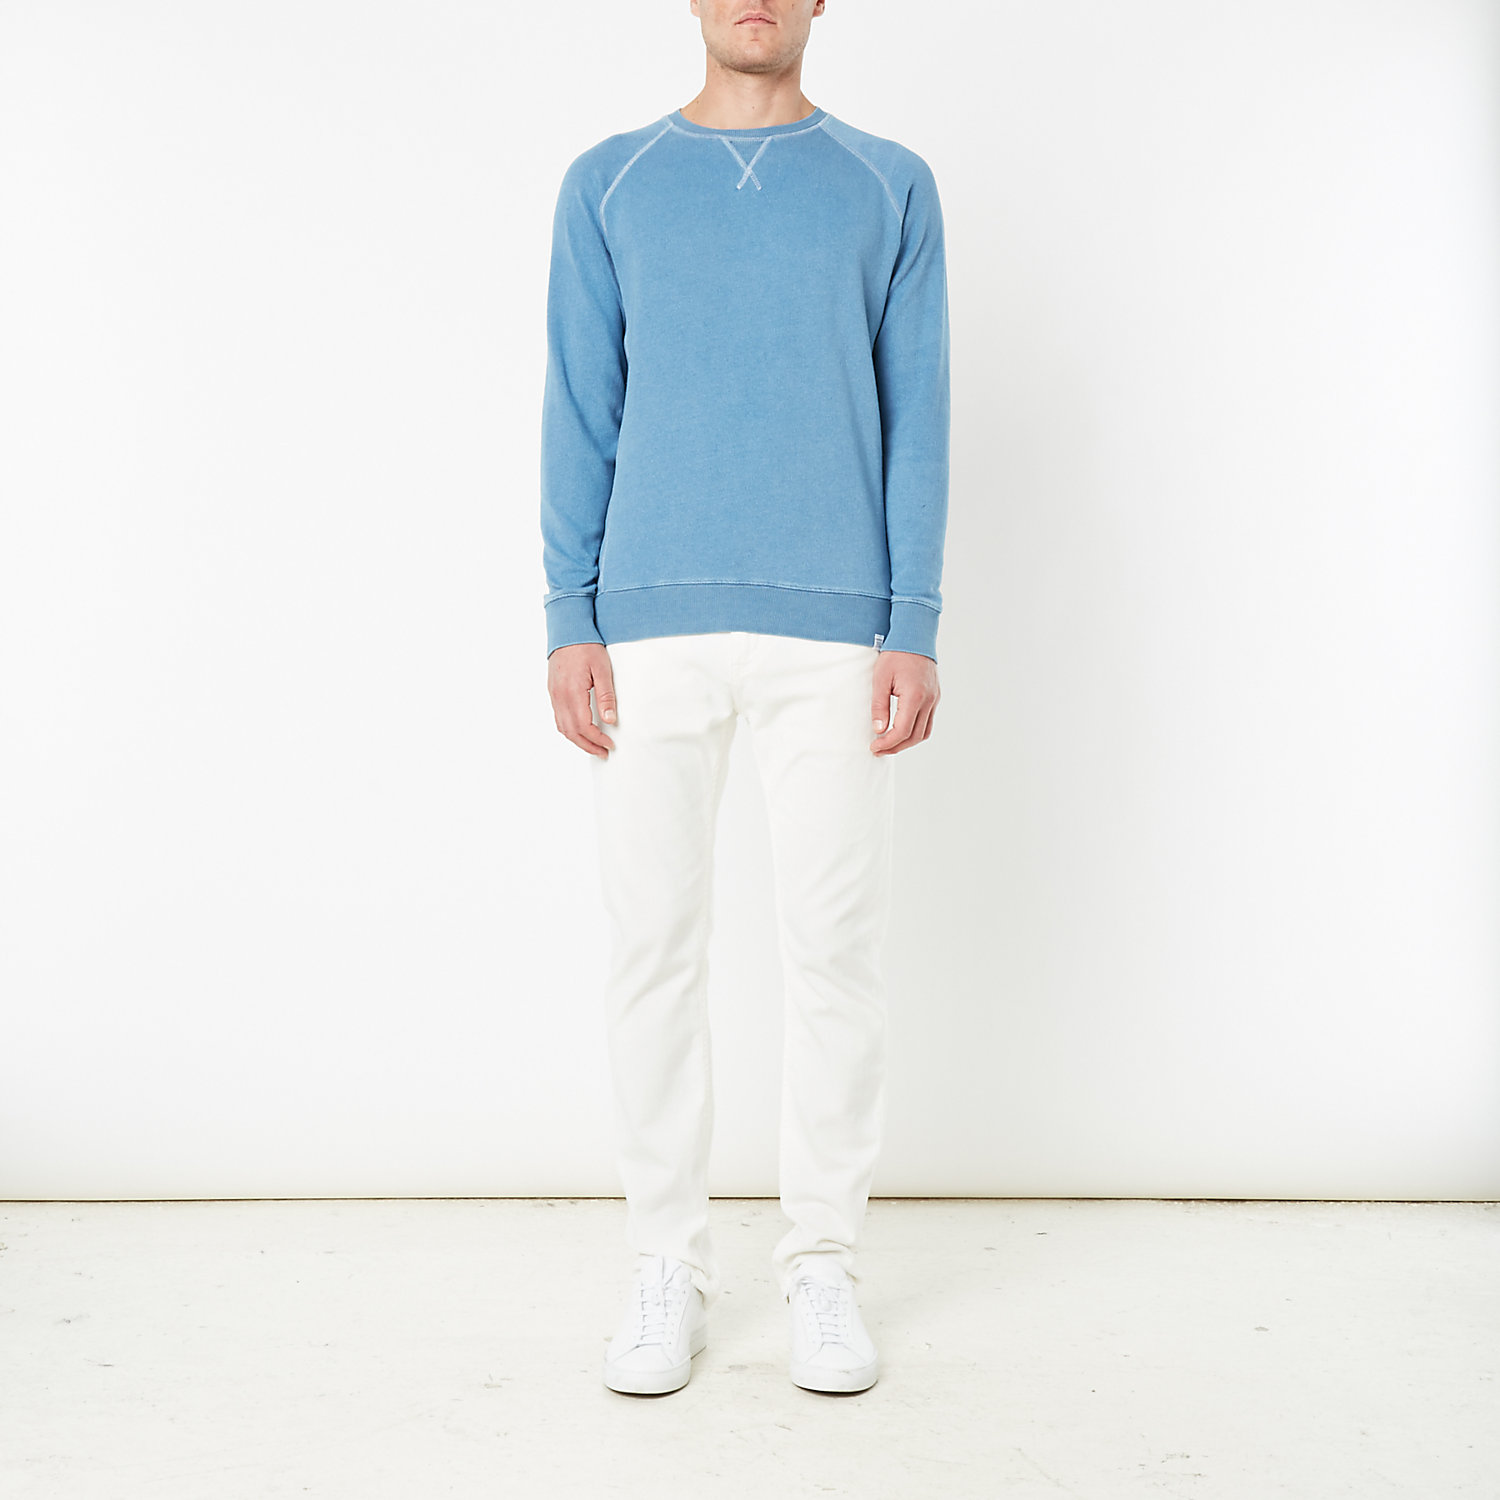 TRISTAN LIGHT INDIGO SWEATSHIRT